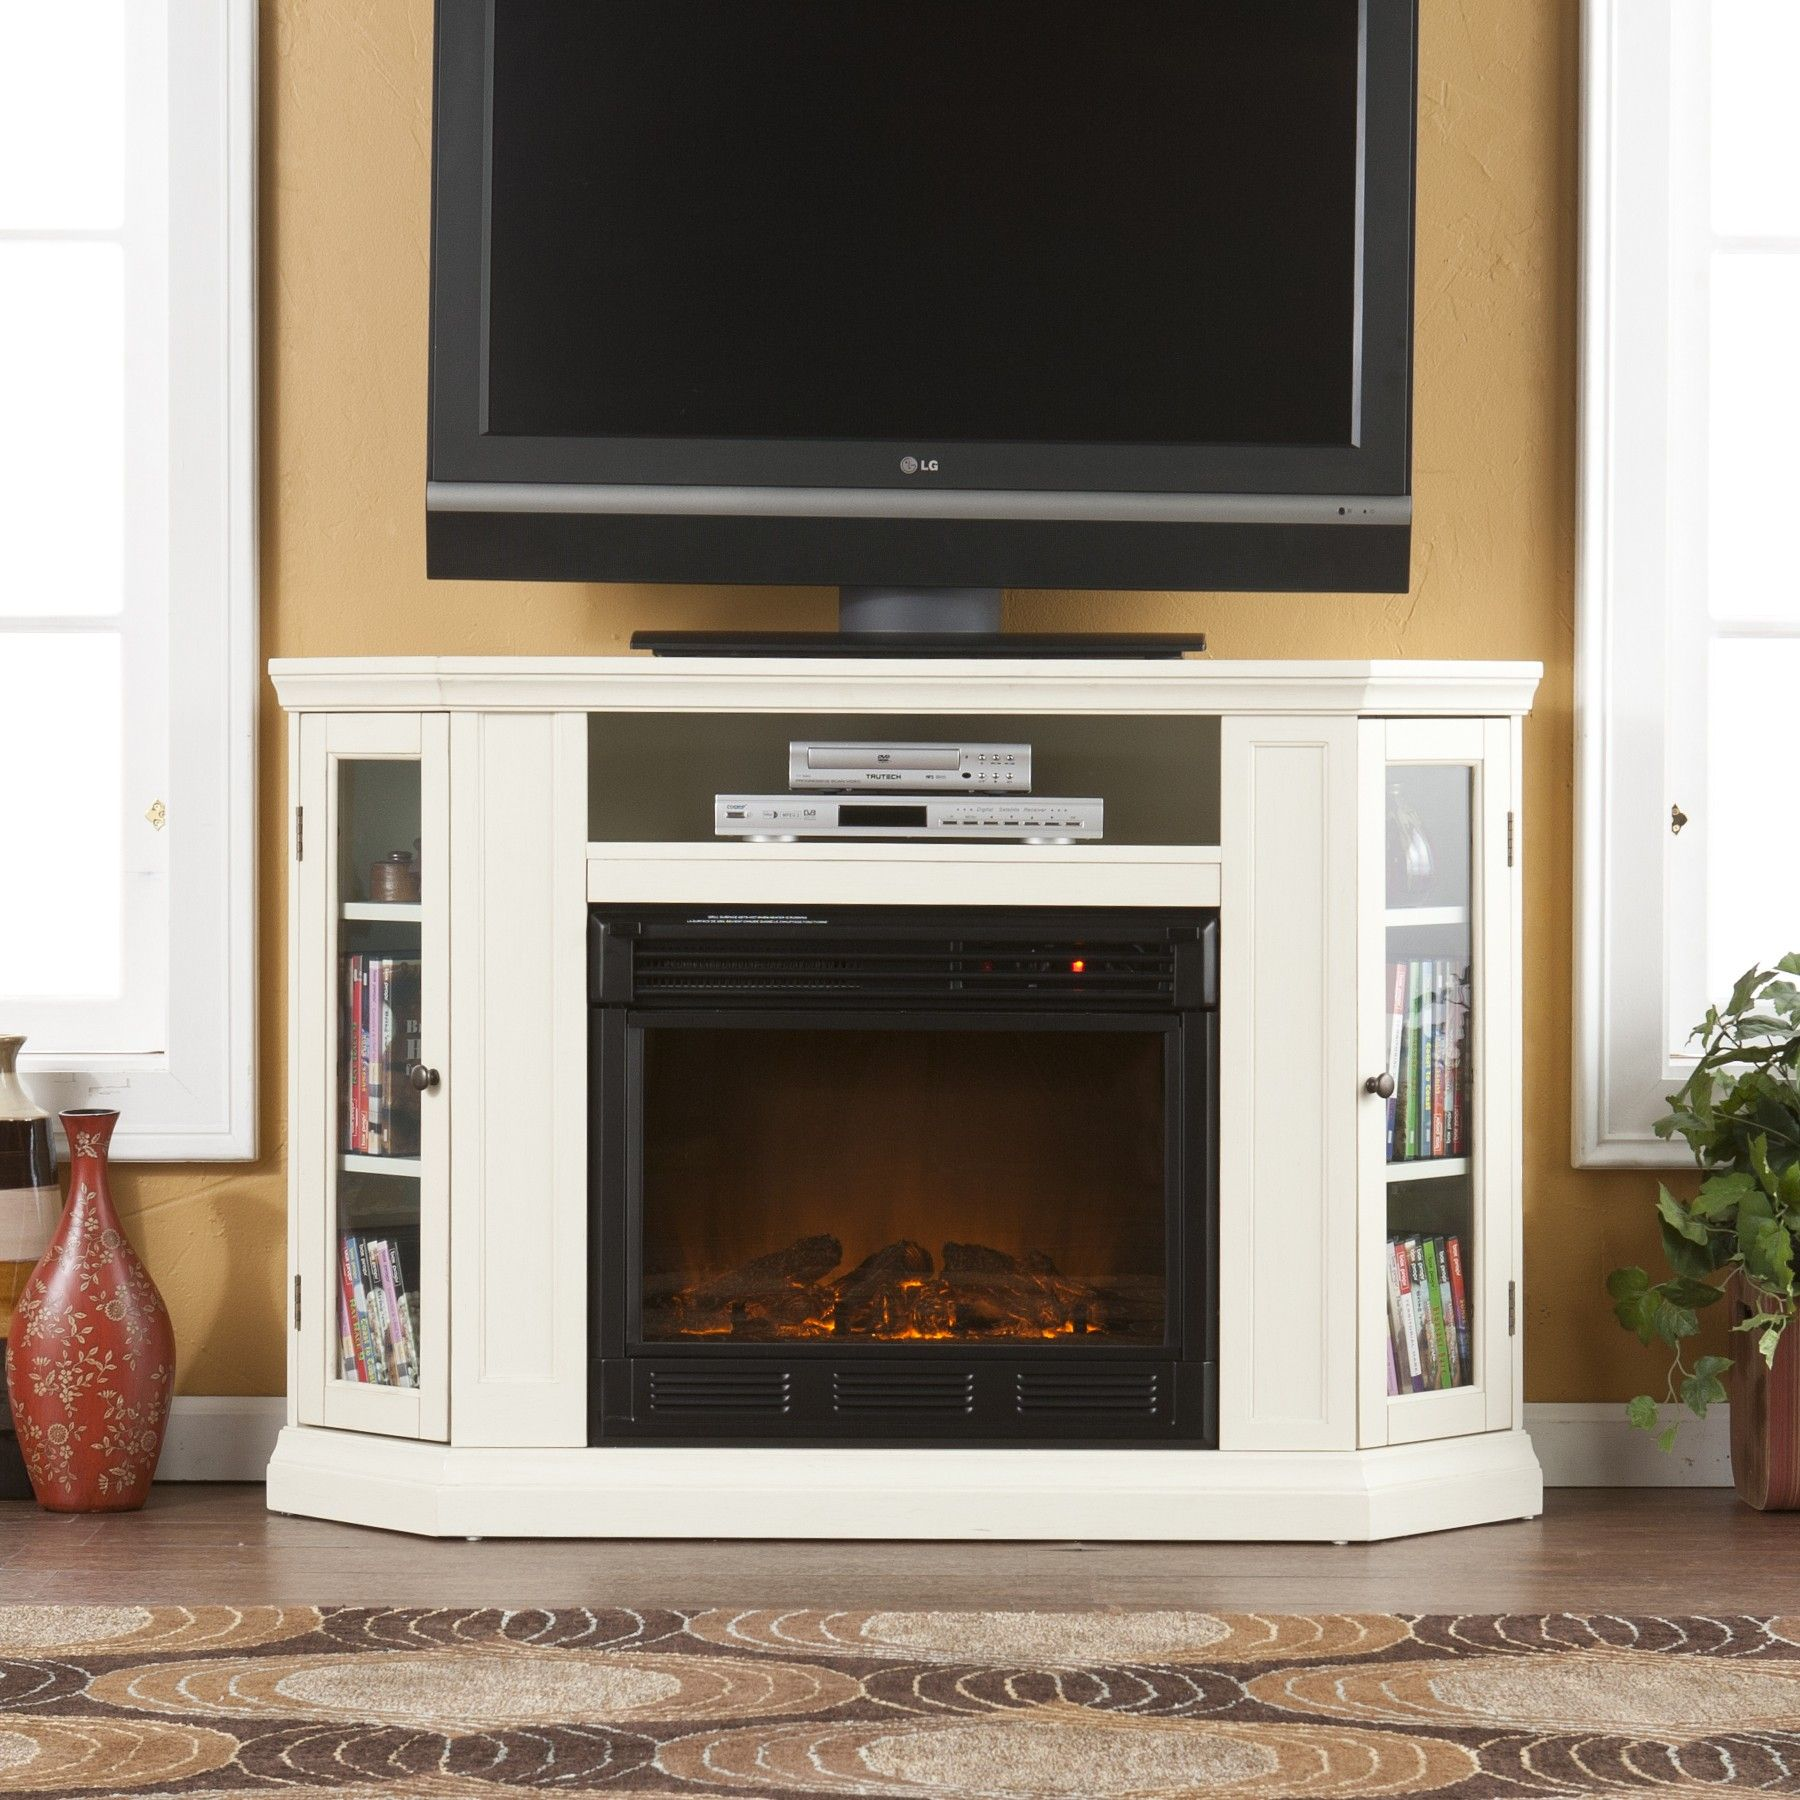 Pretty White Wooden Fireplace Mantle With Storage Under Large LCD ...